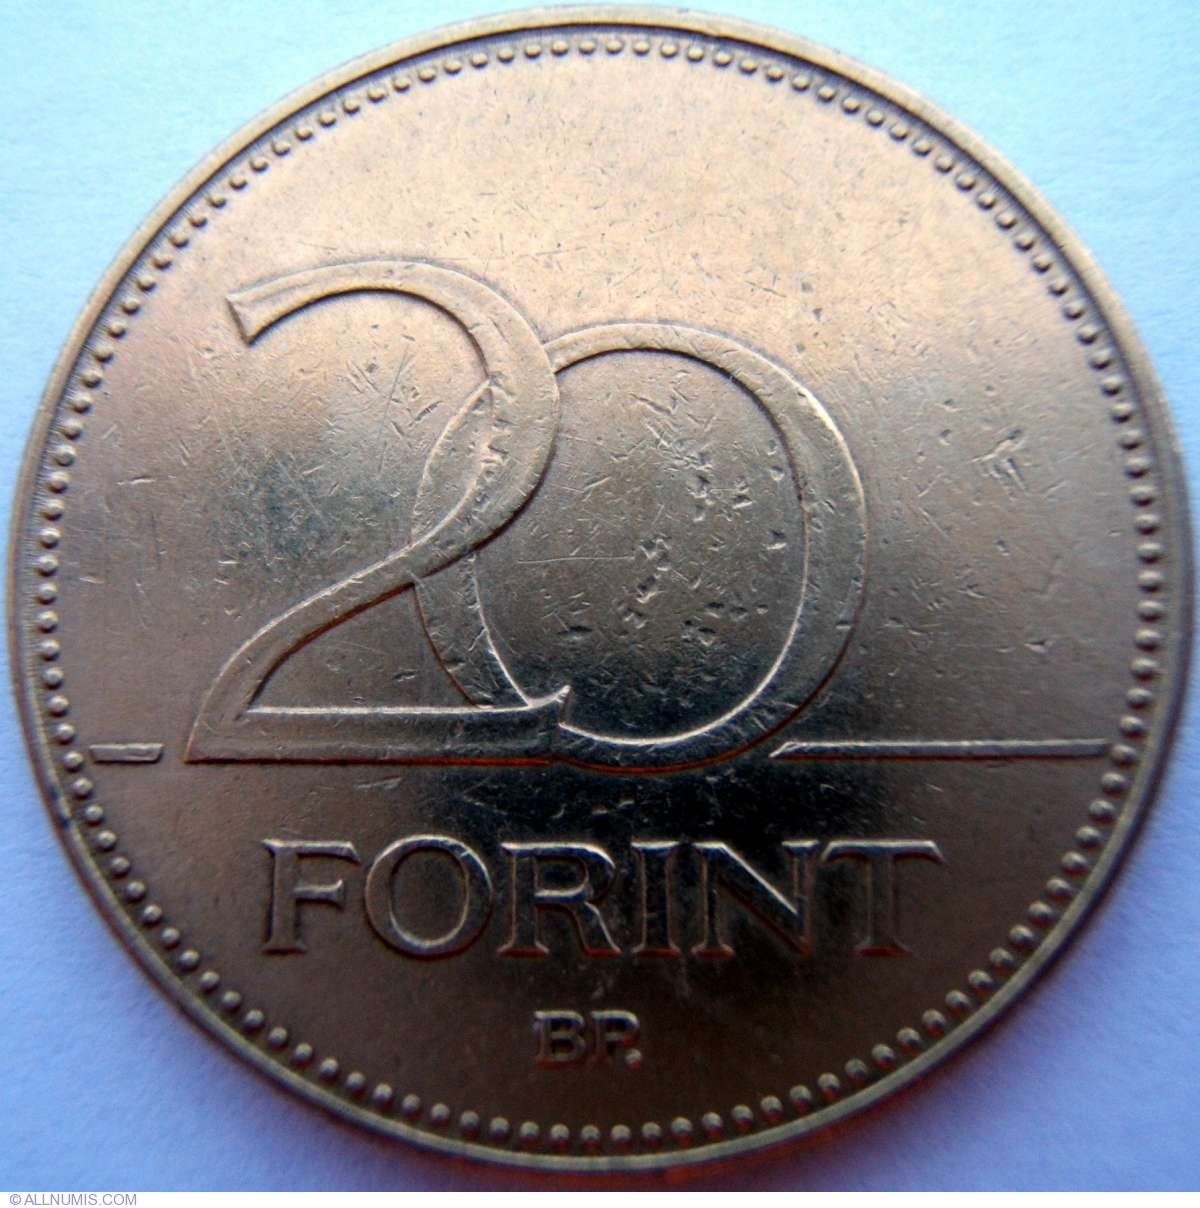 forint coin value